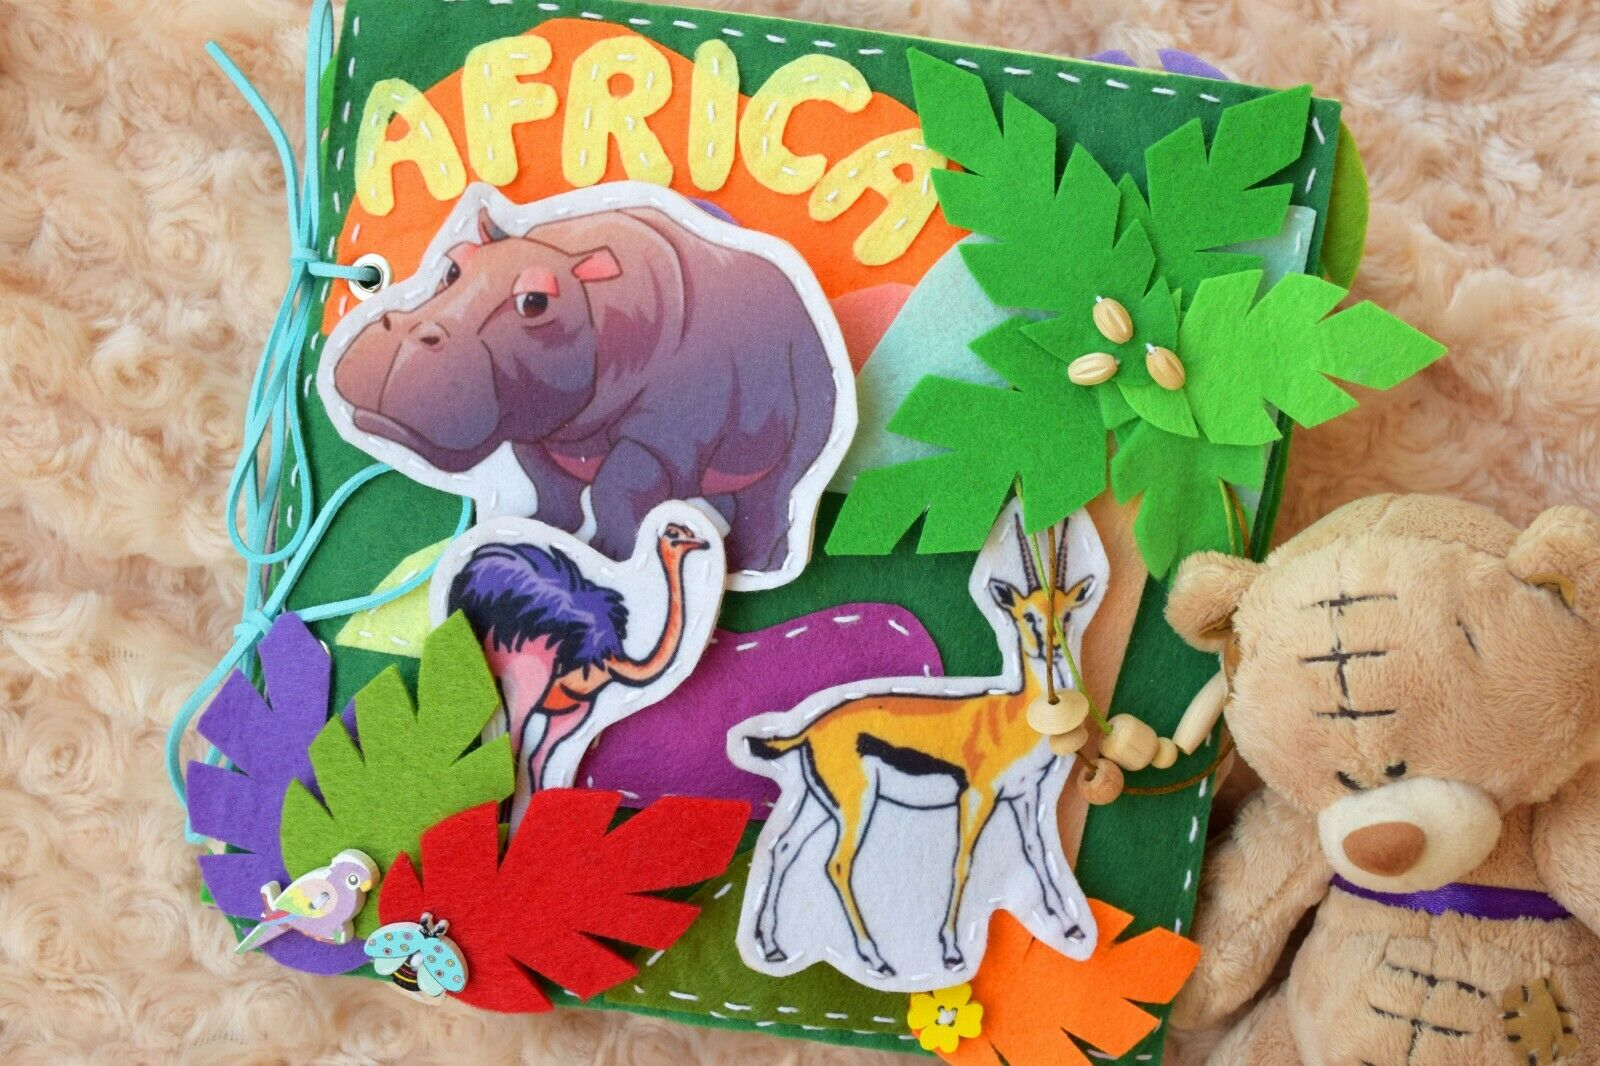 Africa Quiet Busy Felt Book for Kids Toddler Activity Educational Animal Baby